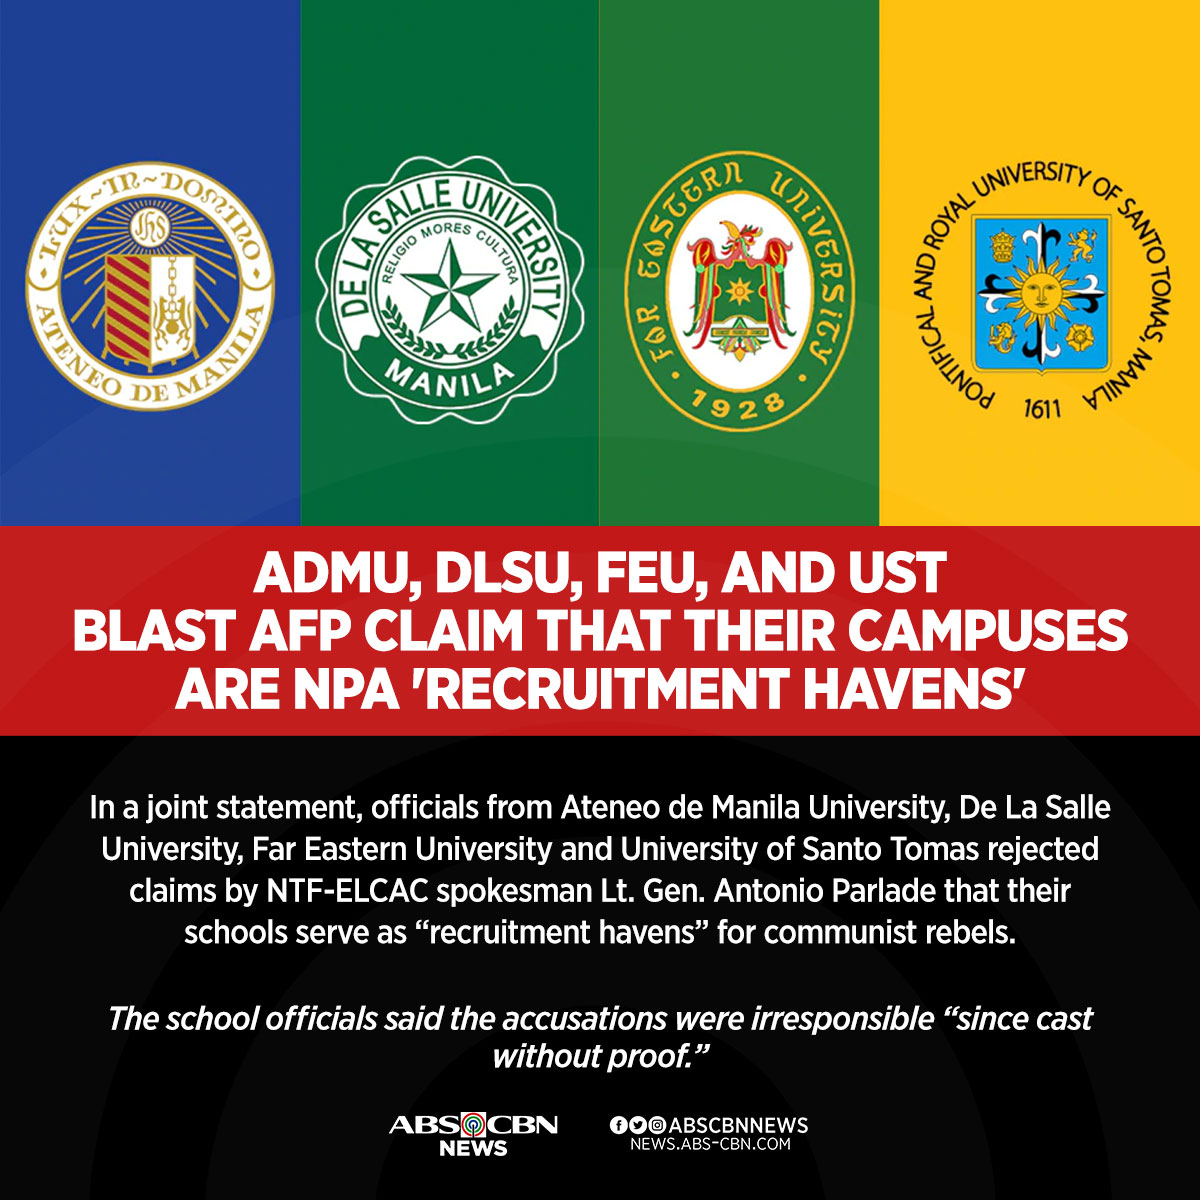 """Several top Philippine universities blasted claims by a high ranking military official that their schools allegedly serve as """"recruitment havens"""" for communist rebels. READ: bit.ly/3636KpN"""